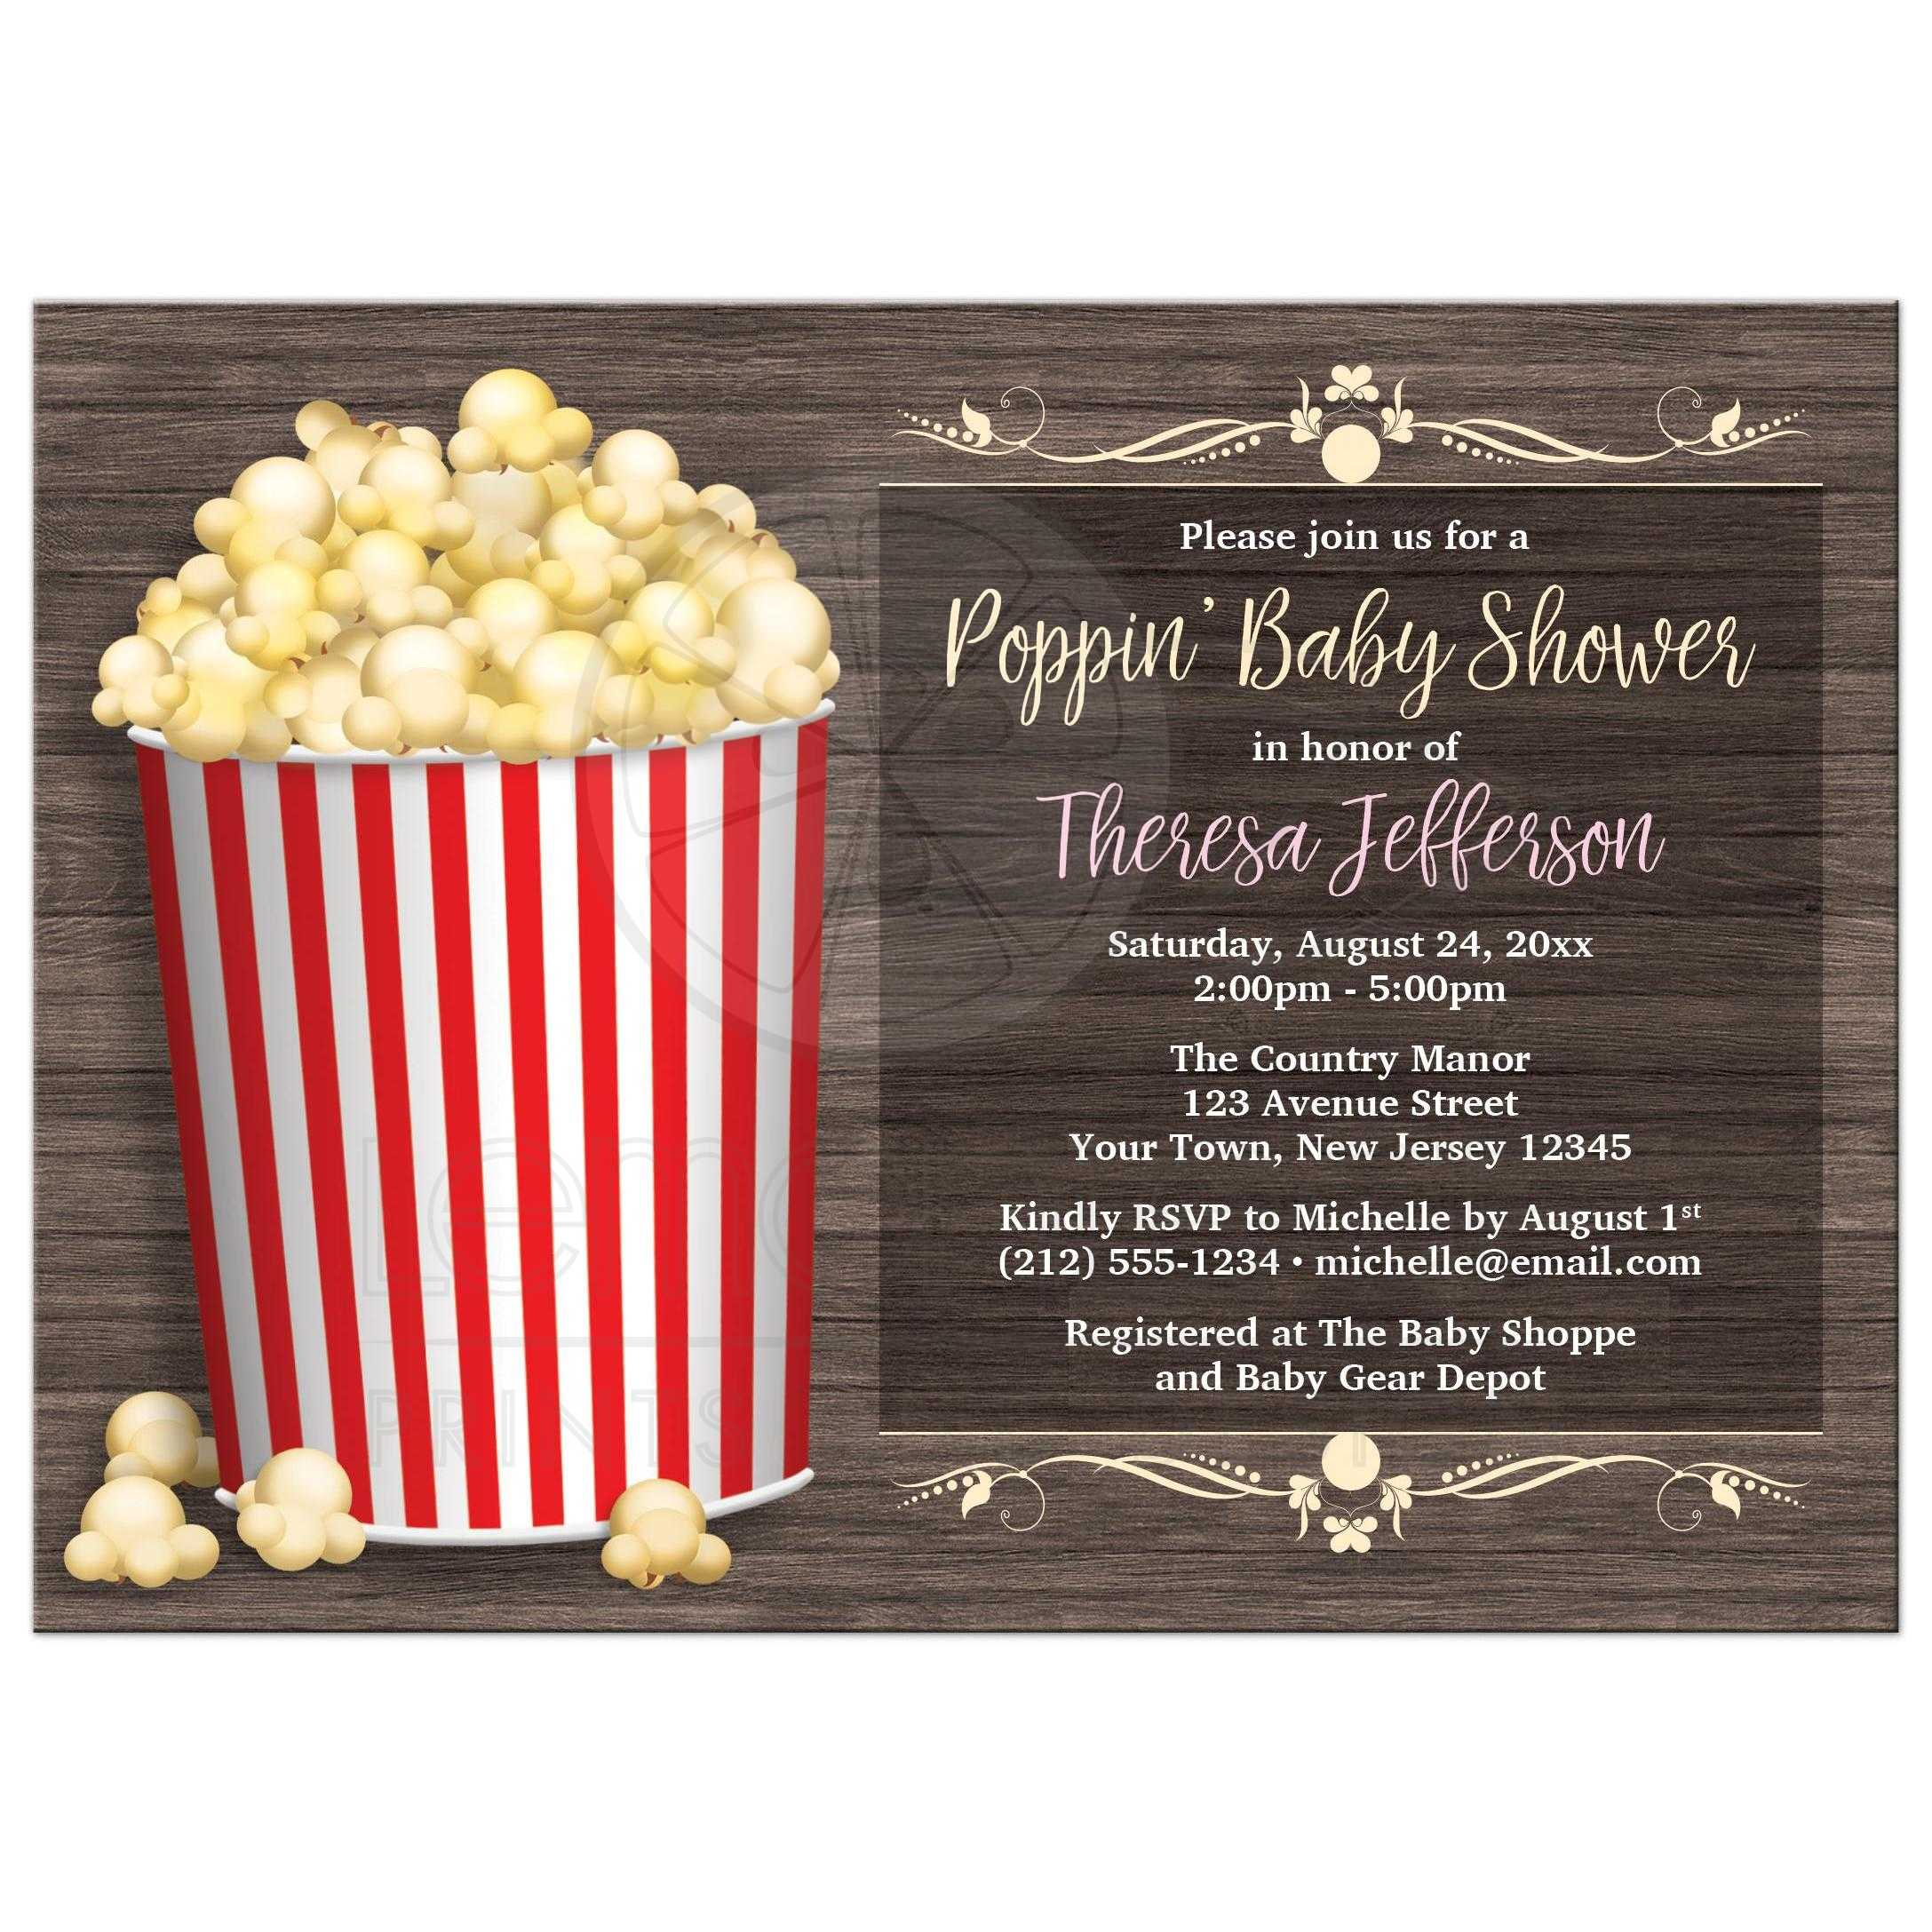 Shower invitations popcorn theme rustic wood baby shower invitations popcorn theme rustic wood filmwisefo Images